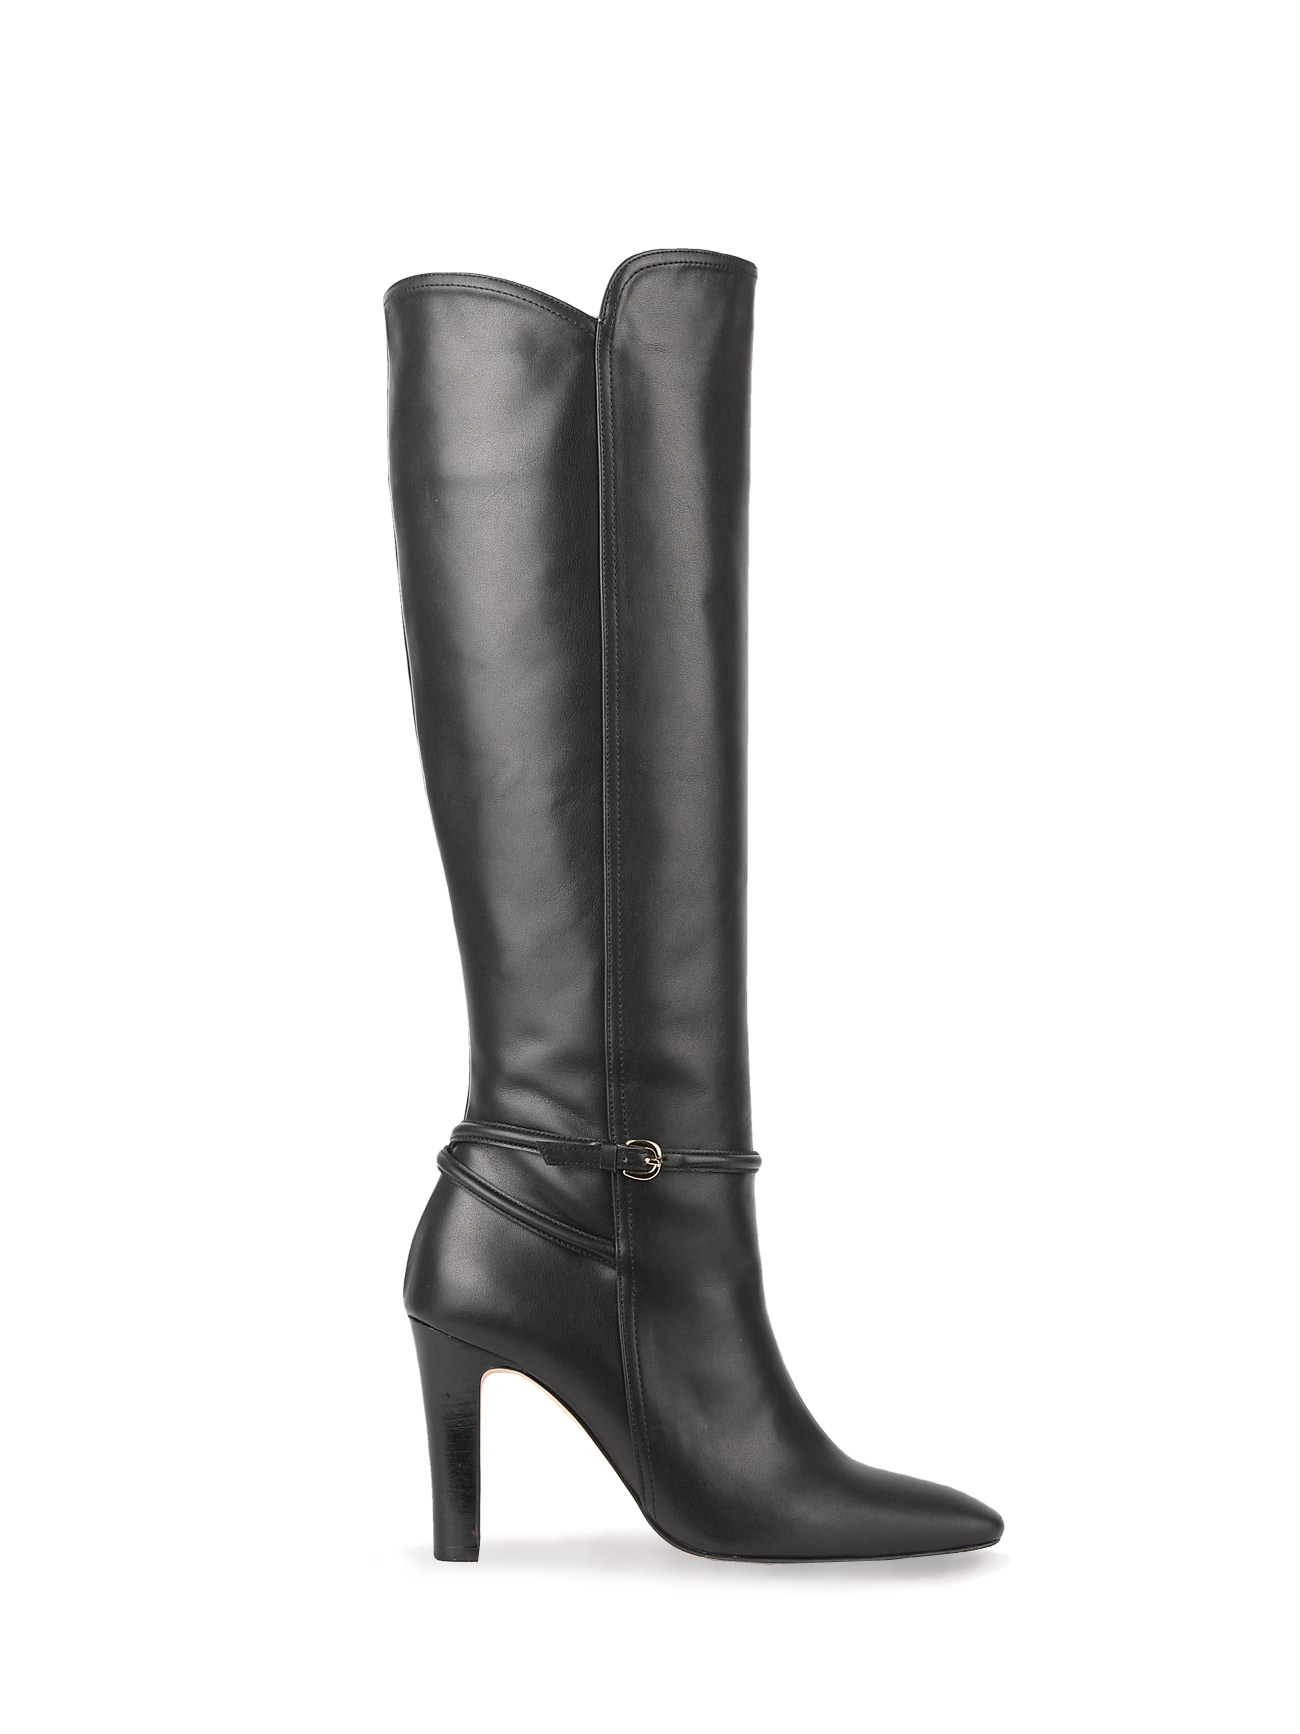 KELLY KNEE-HIGH LEATHER BOOTS (7cm, 9cm) - BLACK